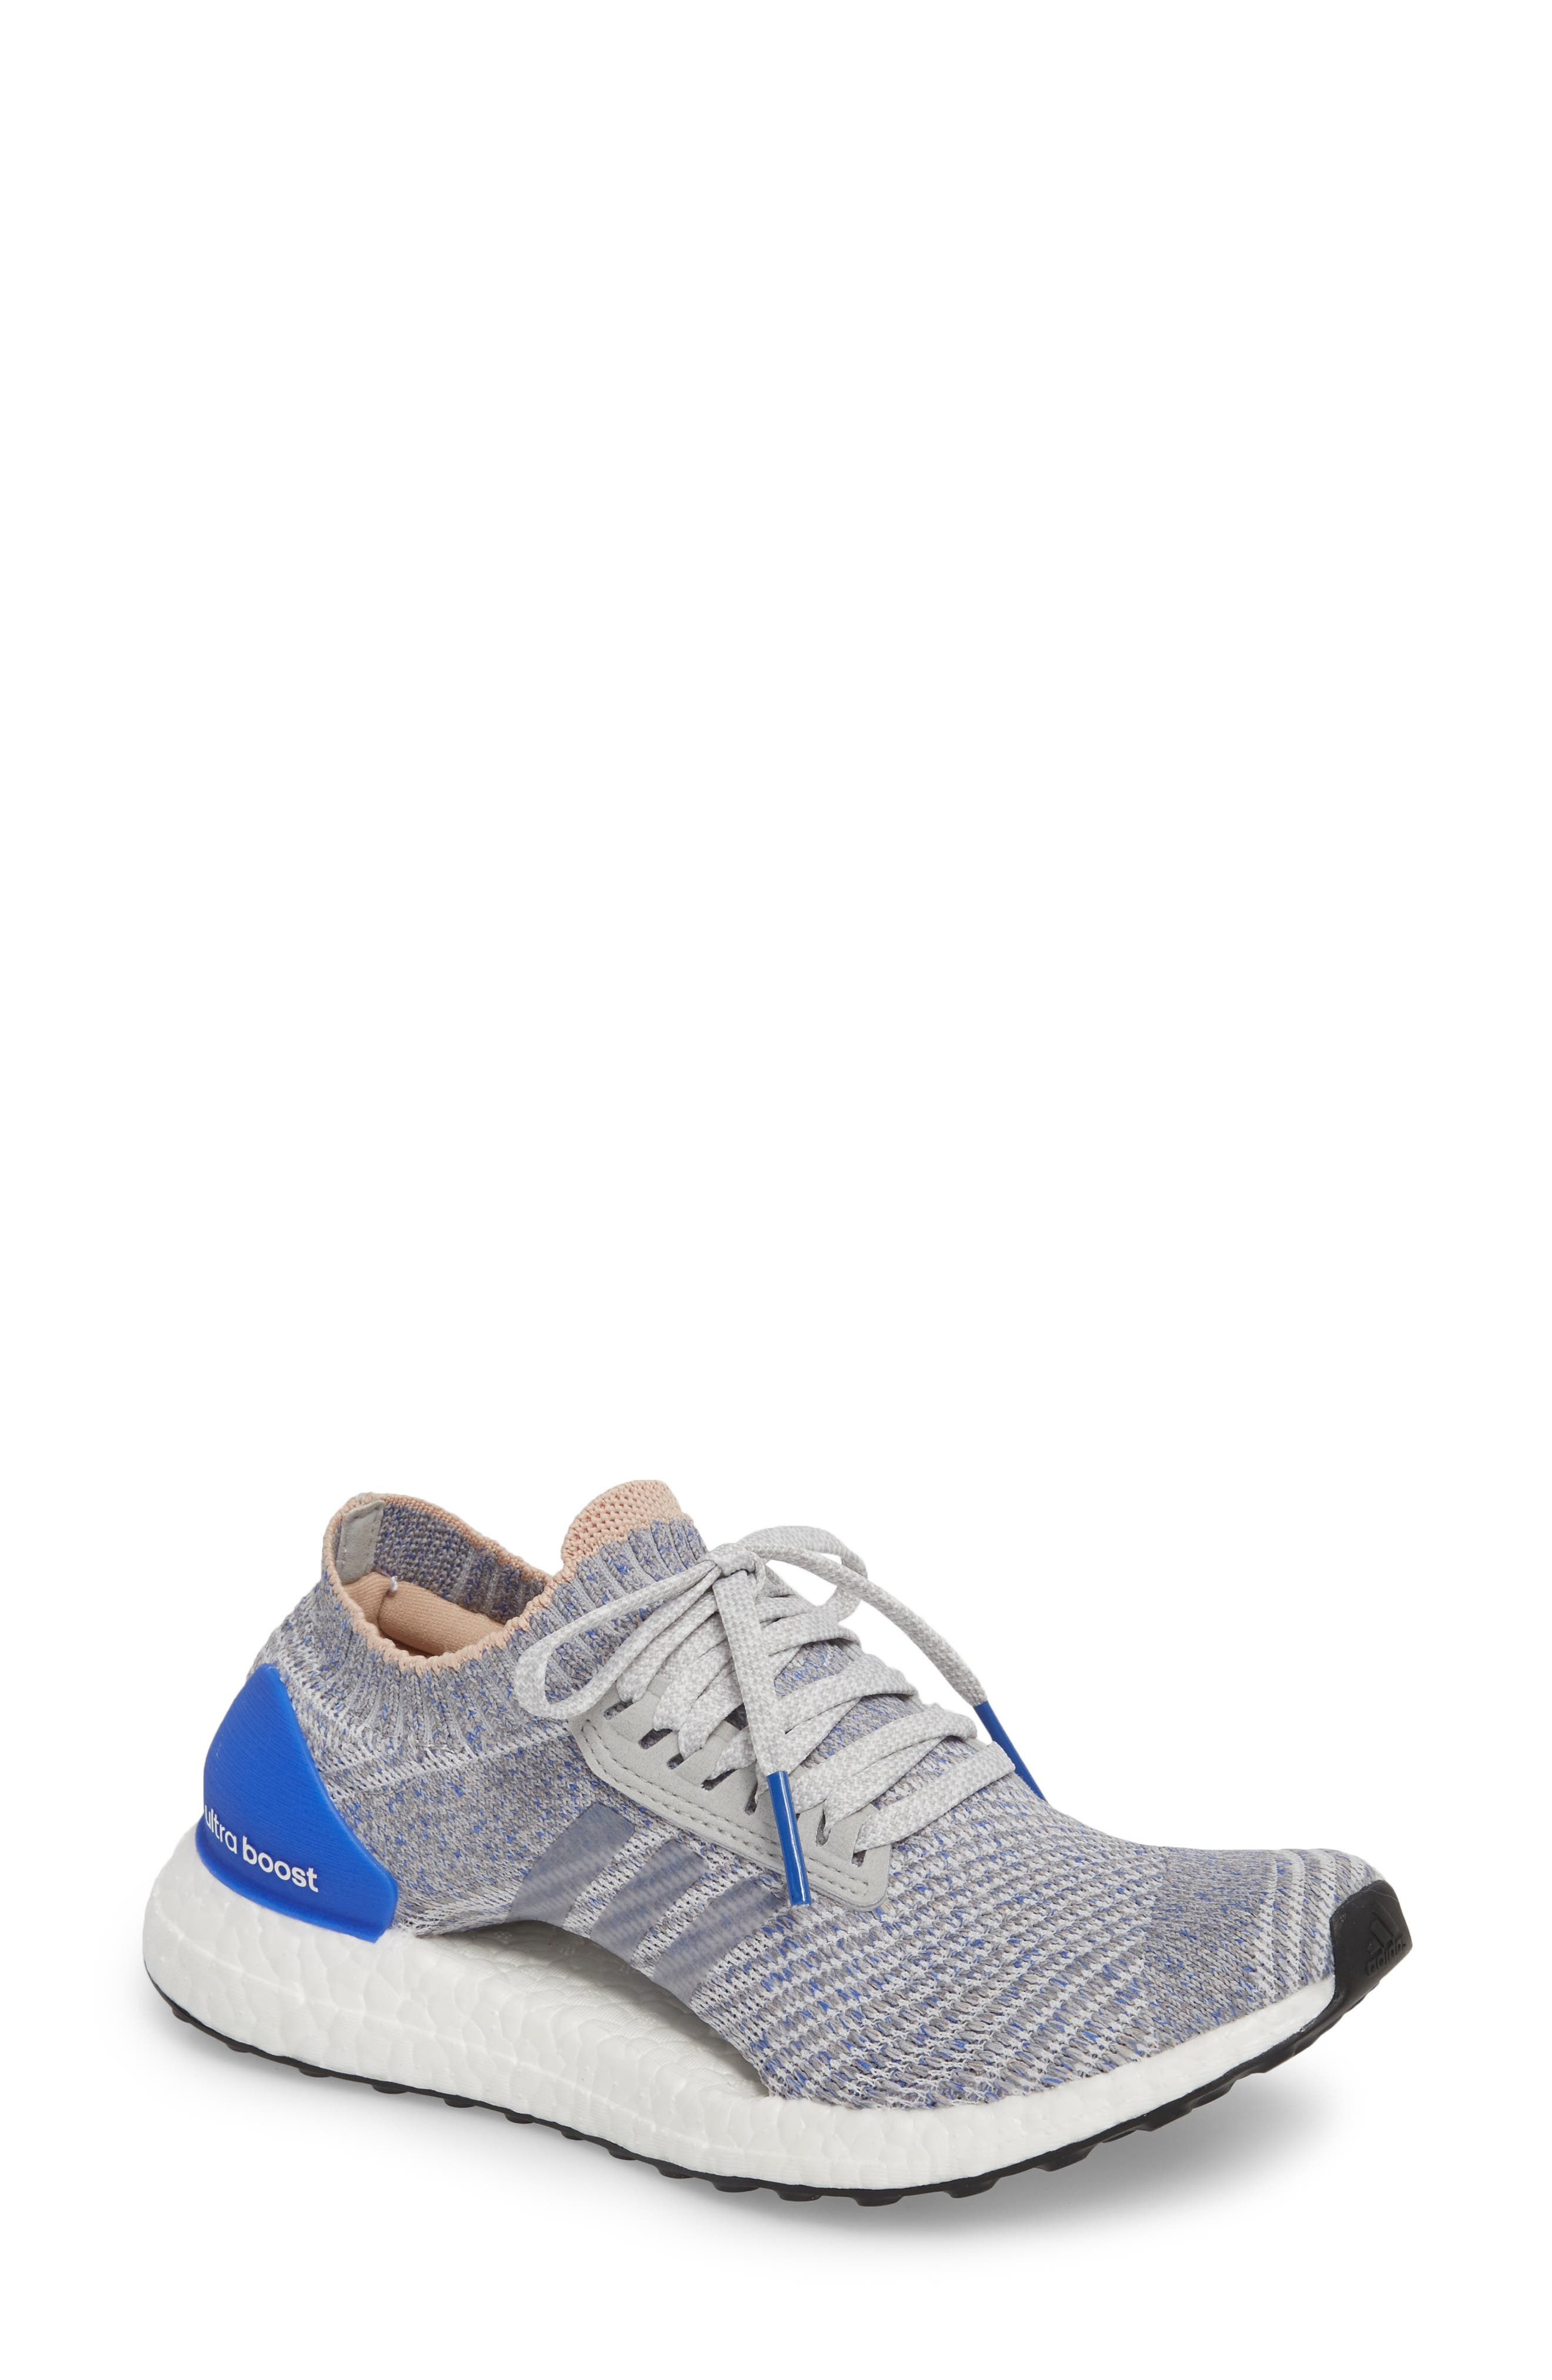 adidas womens sneakers ultra boost